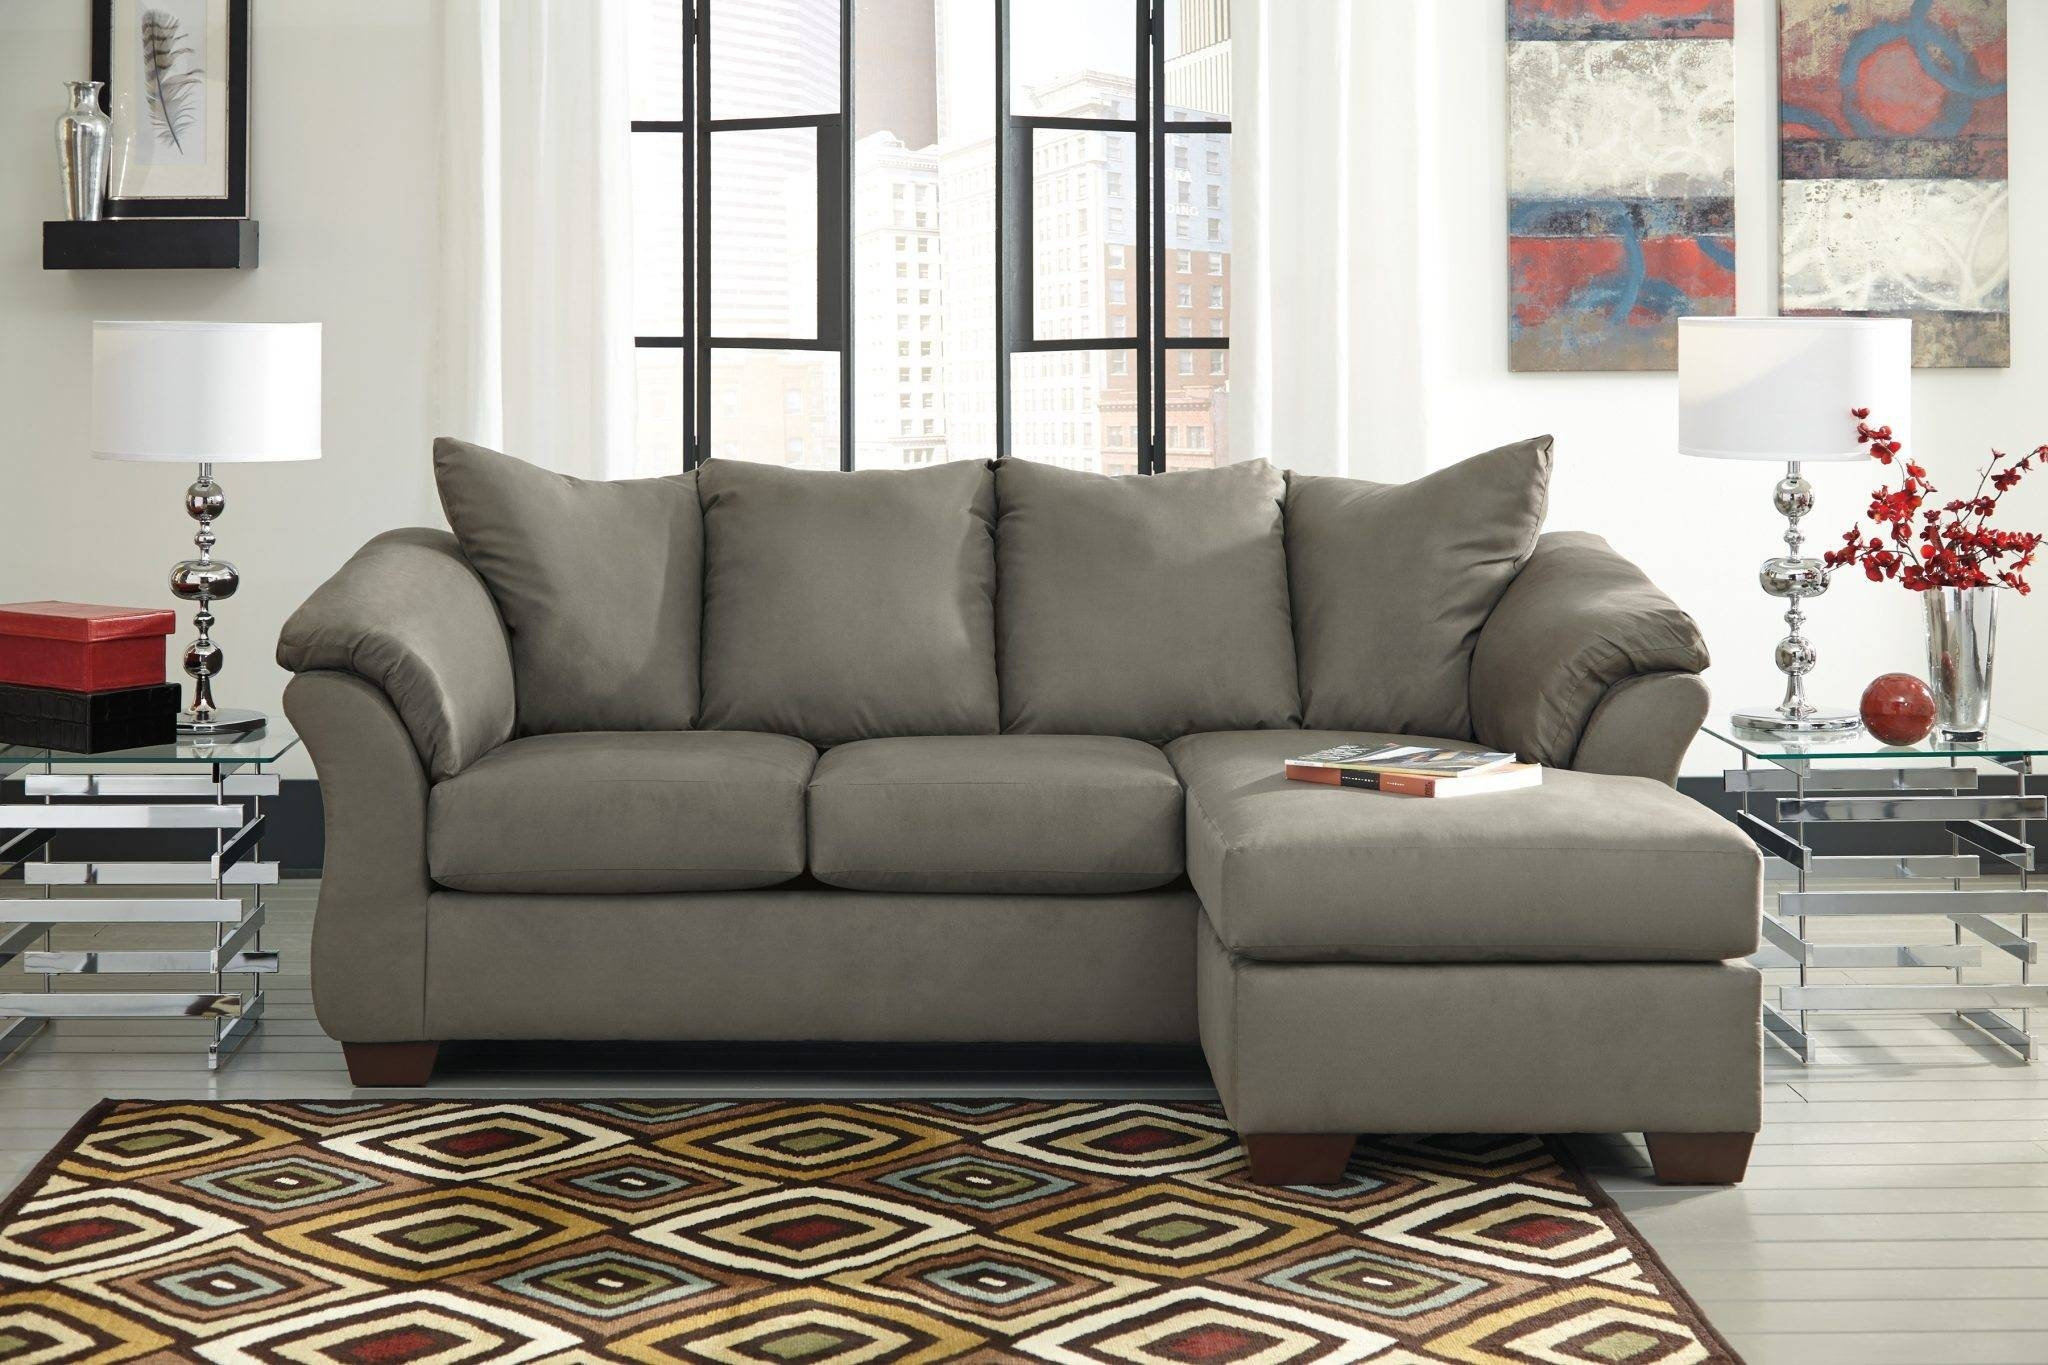 Best Furniture Mentor Oh: Furniture Store - Ashley Furniture inside Ashley Furniture Gray Sofa (Image 14 of 30)